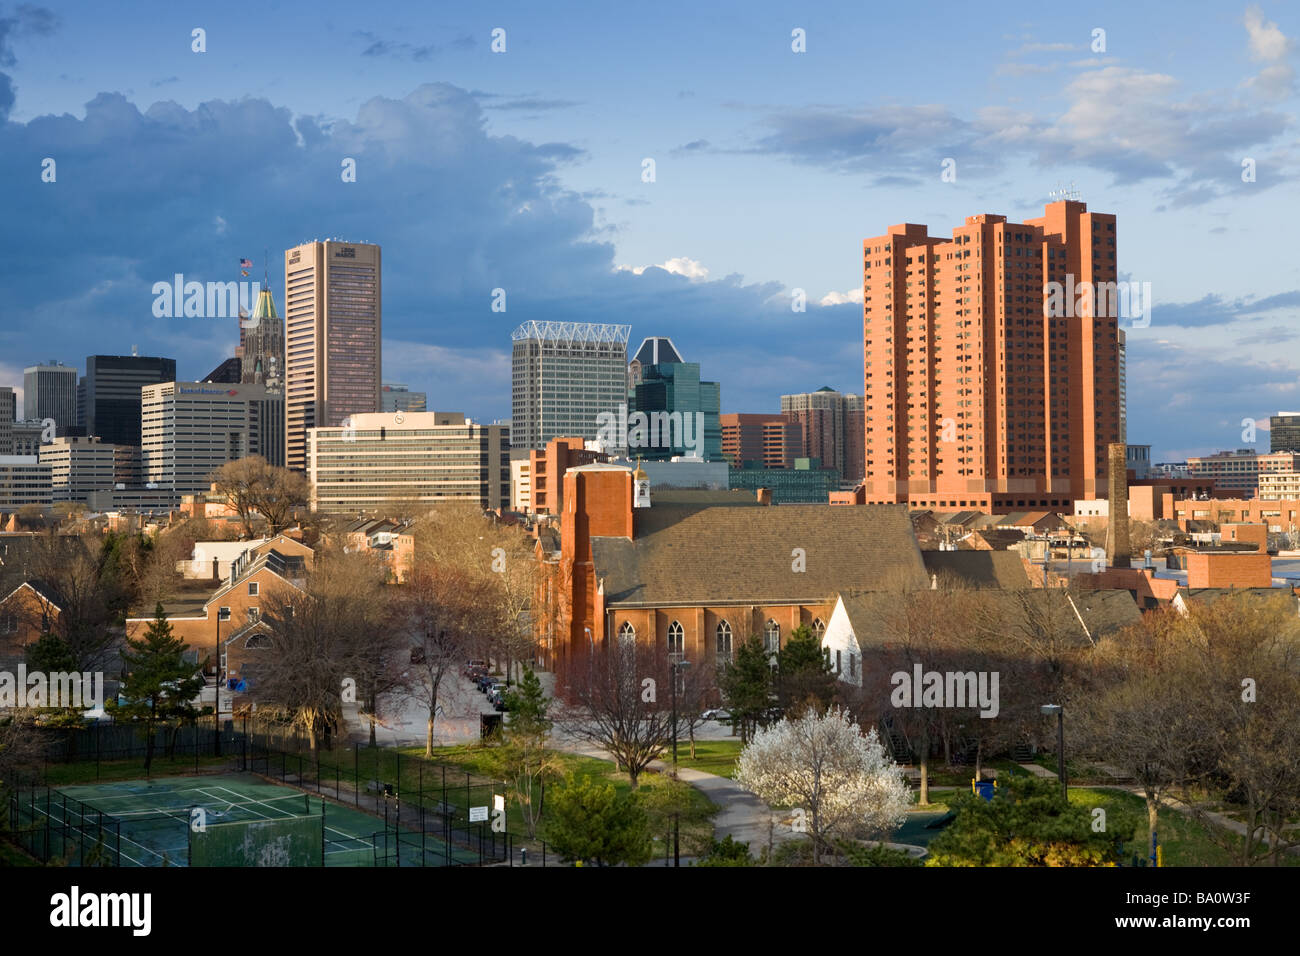 Skyline of Baltimore Maryland from the south - Stock Image